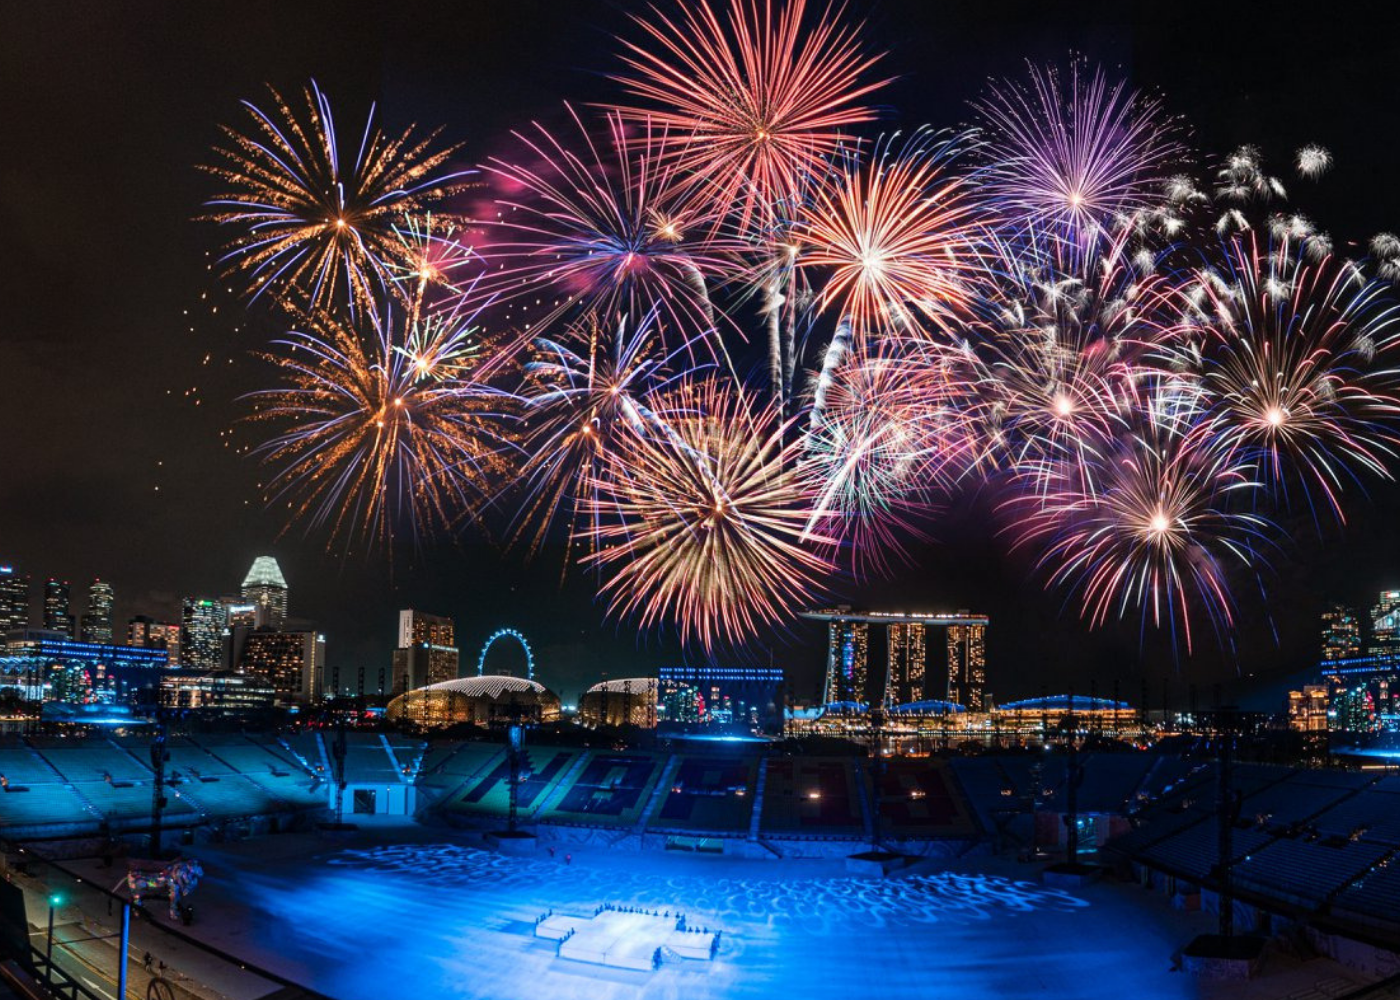 Smoke & Mirrors invites you to check out the fireworks displays during NDP season